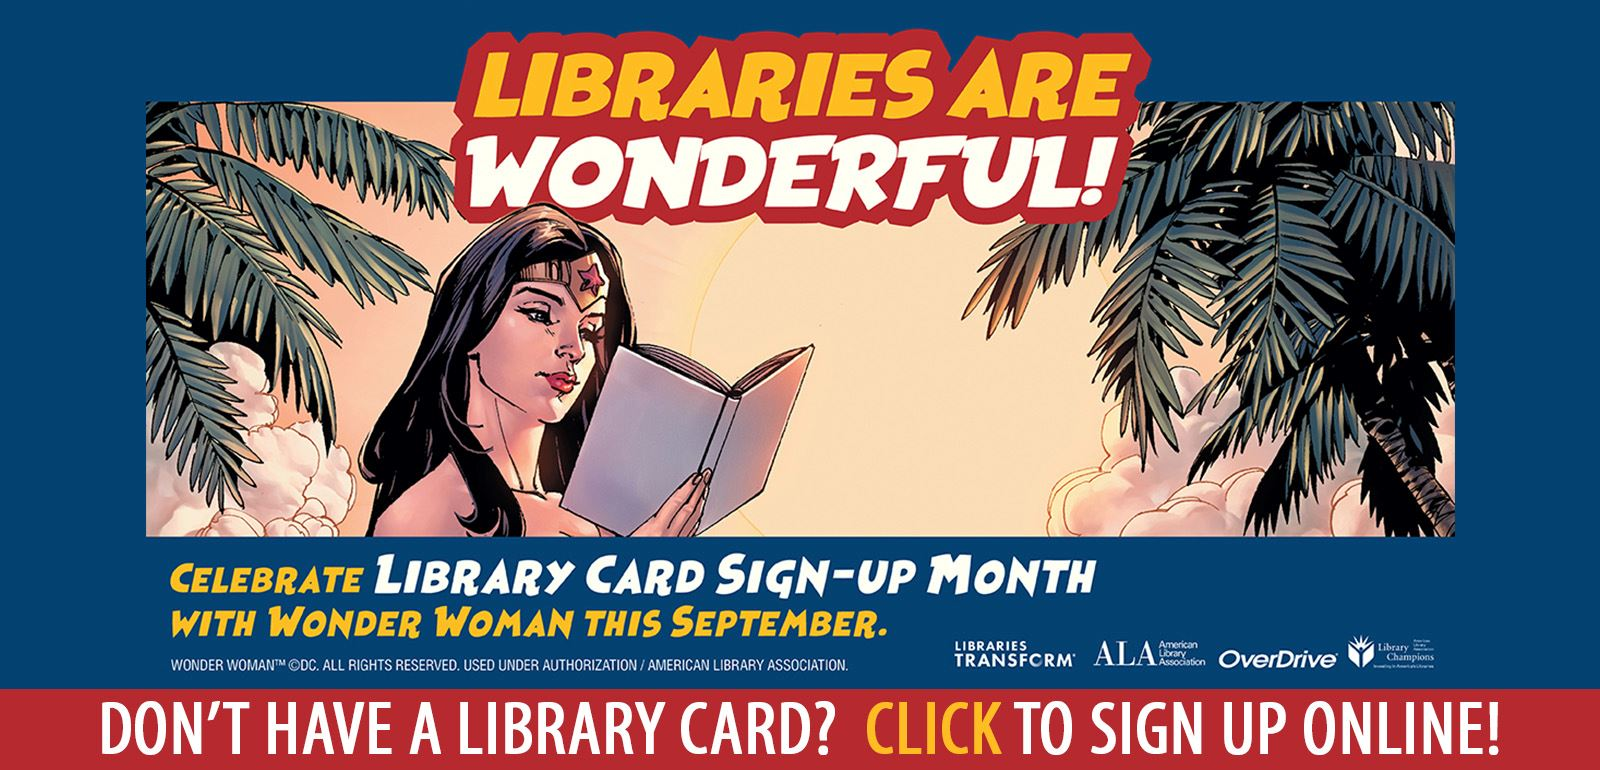 Official Library Card Signup Month Graphic featuring Wonder Woman reading a book